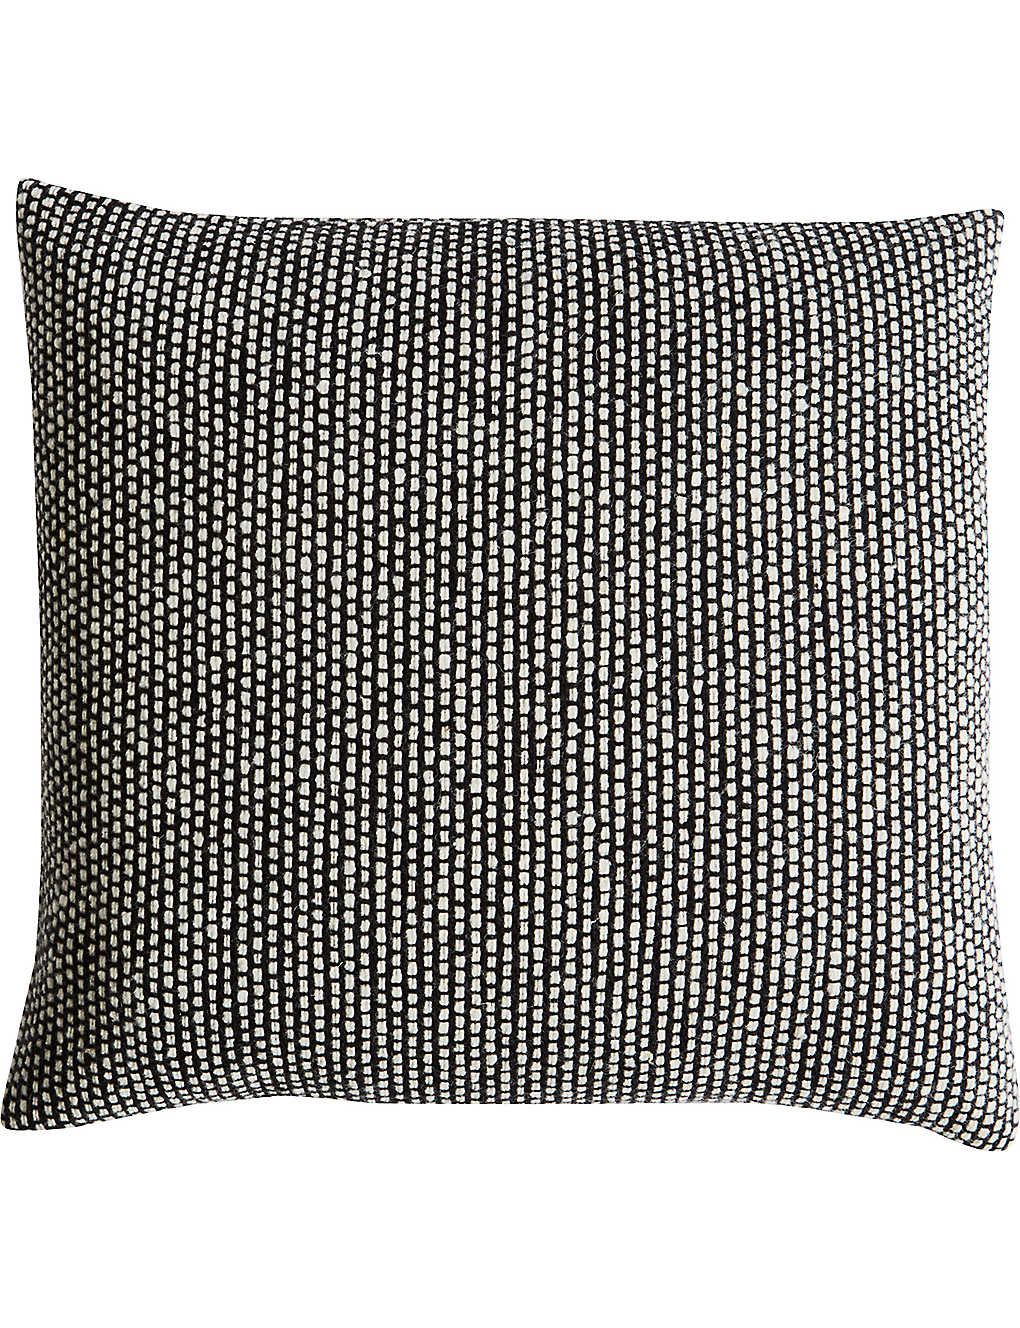 MOURNE TEXTILES: Tweed Emphasize merino wool cushion